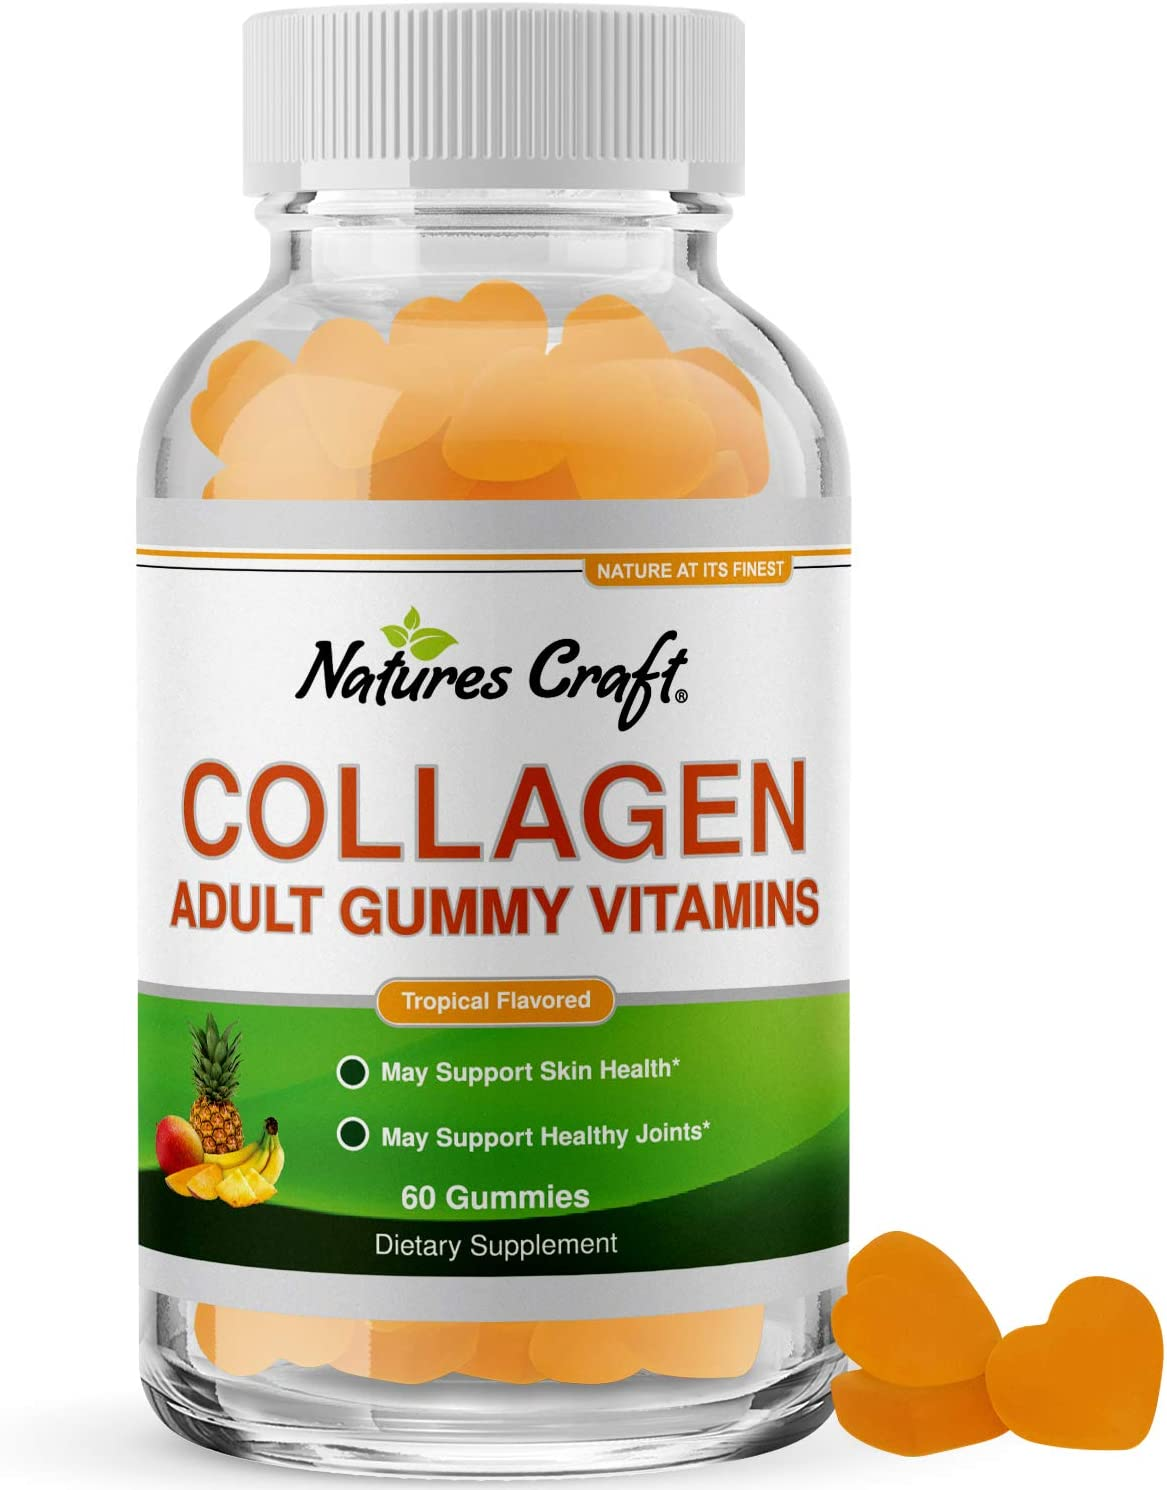 Hydrolyzed Collagen Hair Growth Gummies - Hair Skin and Nails Vitamins with Collagen for Hair Loss Nail Health and Growth and Joint Support - Gummy Hair Vitamins for Women and Men - Collagen Gummies